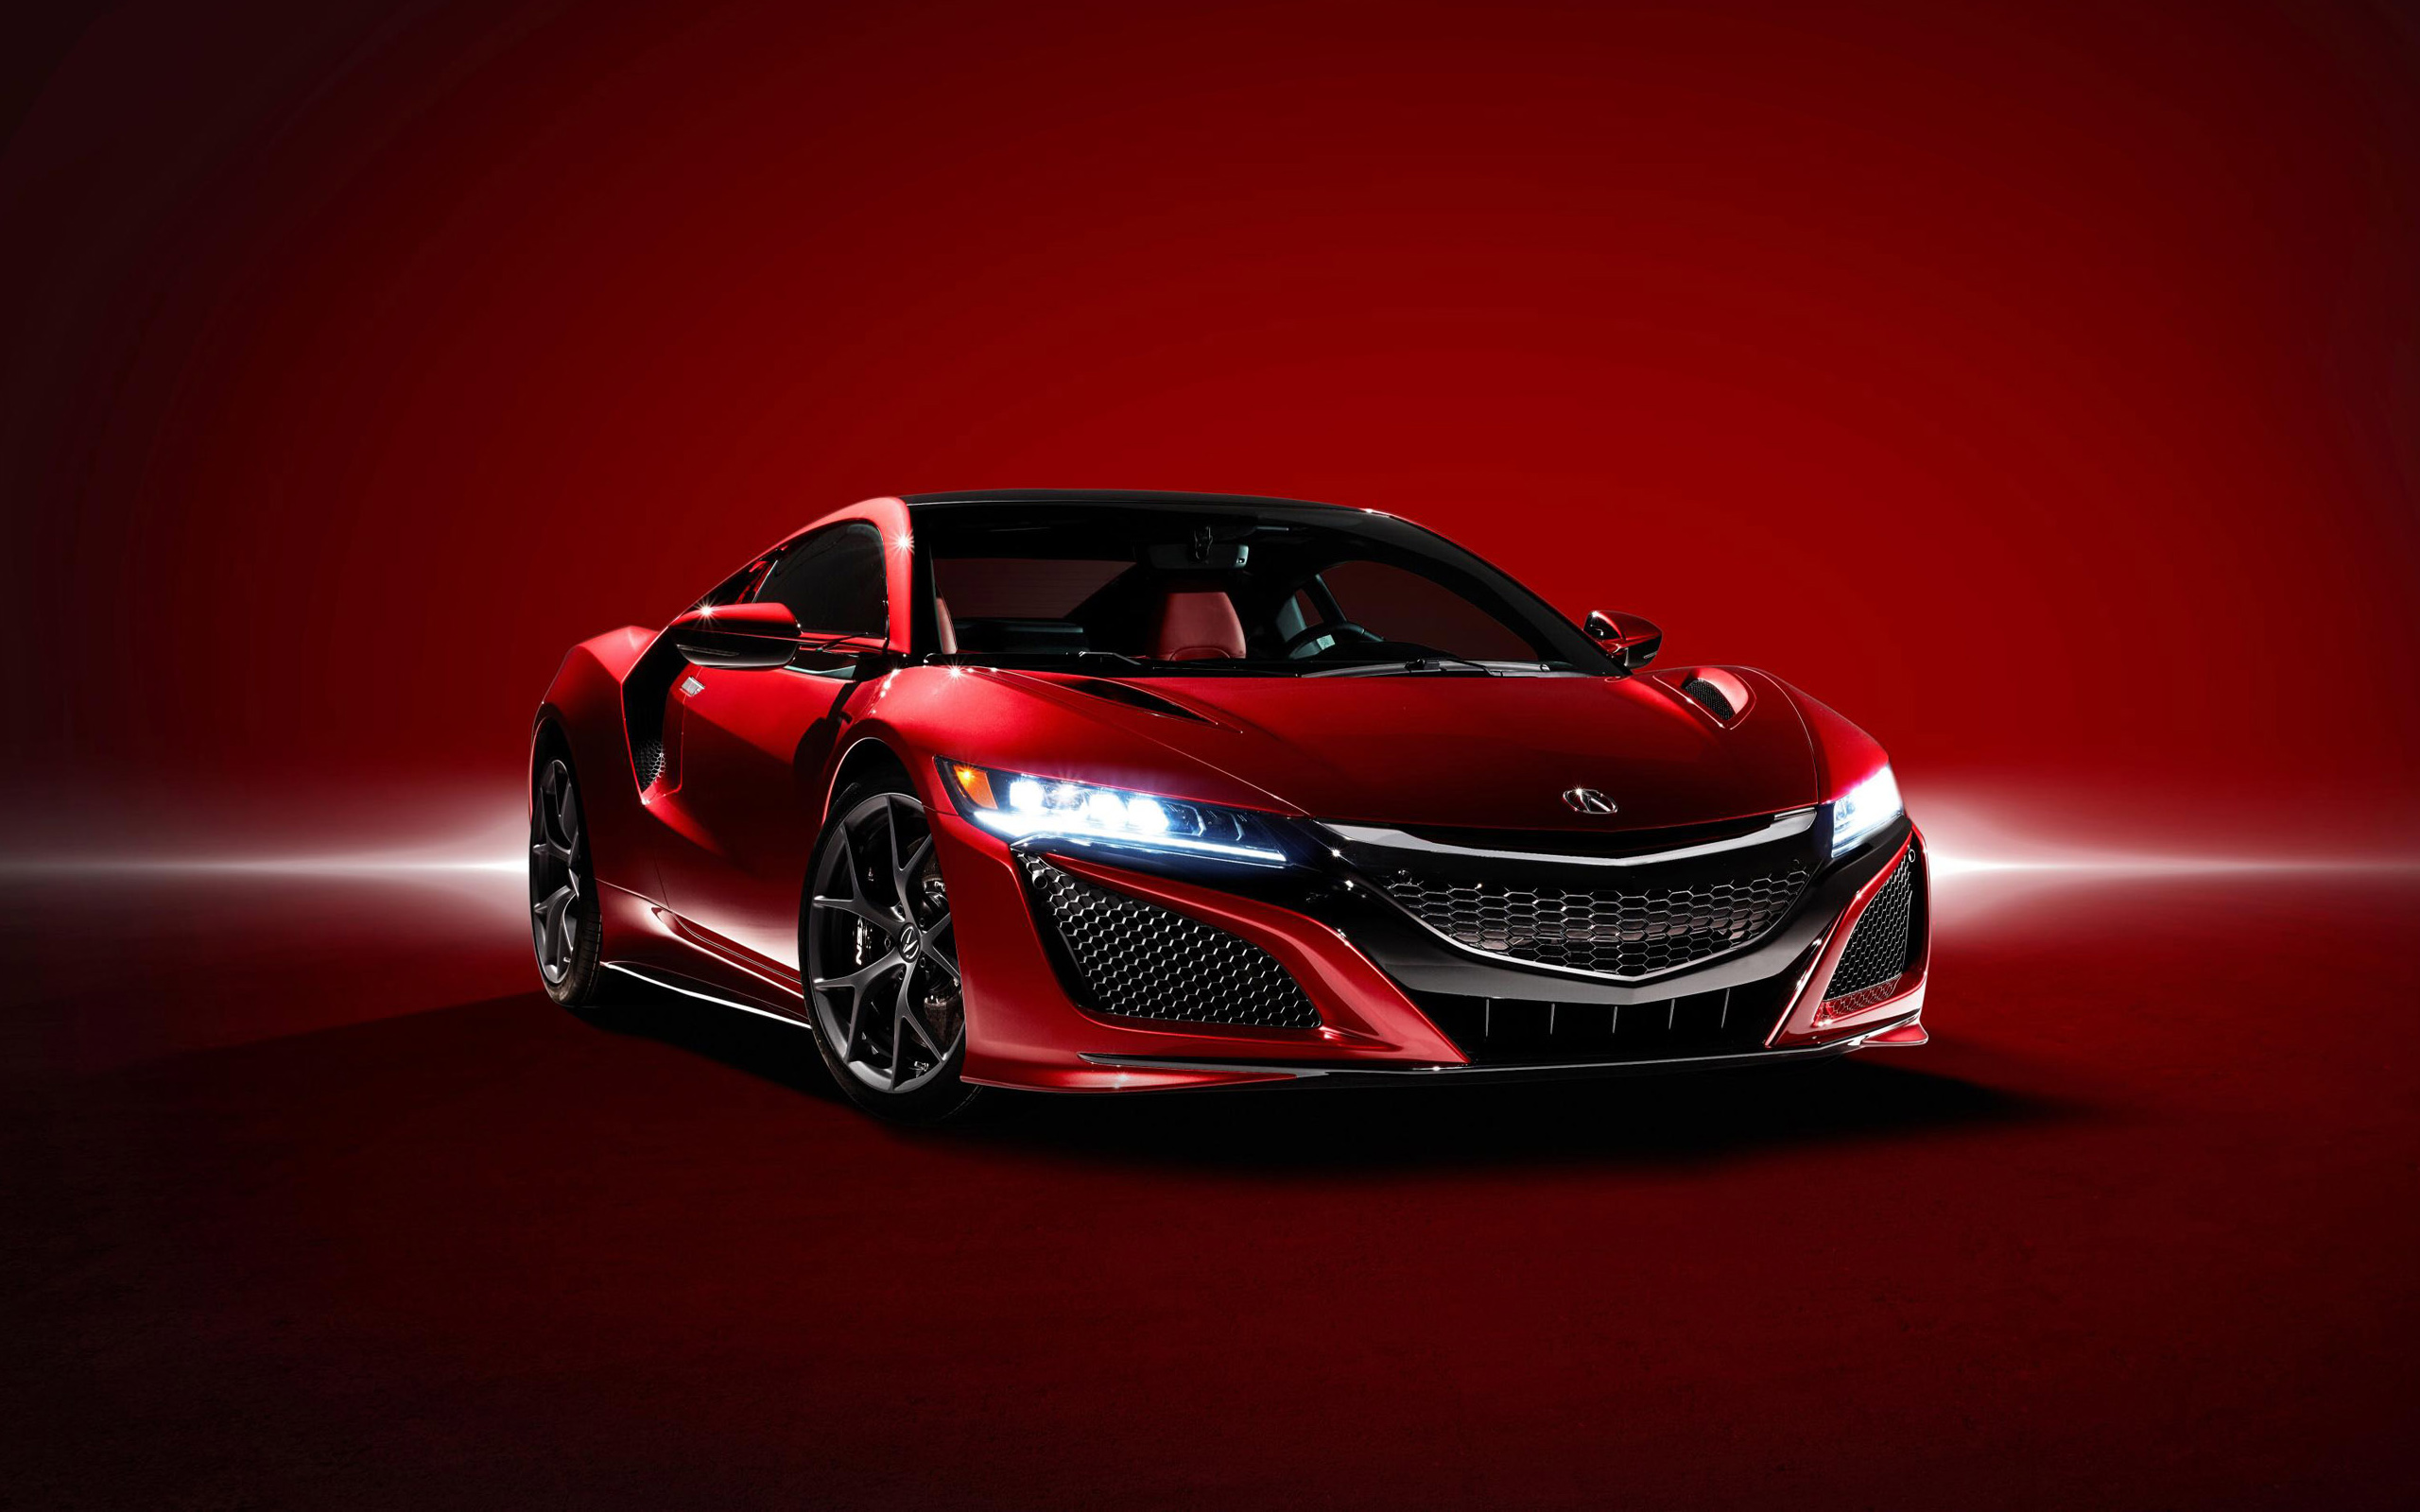 supercar wallpapers, photos and desktop backgrounds up to 8k